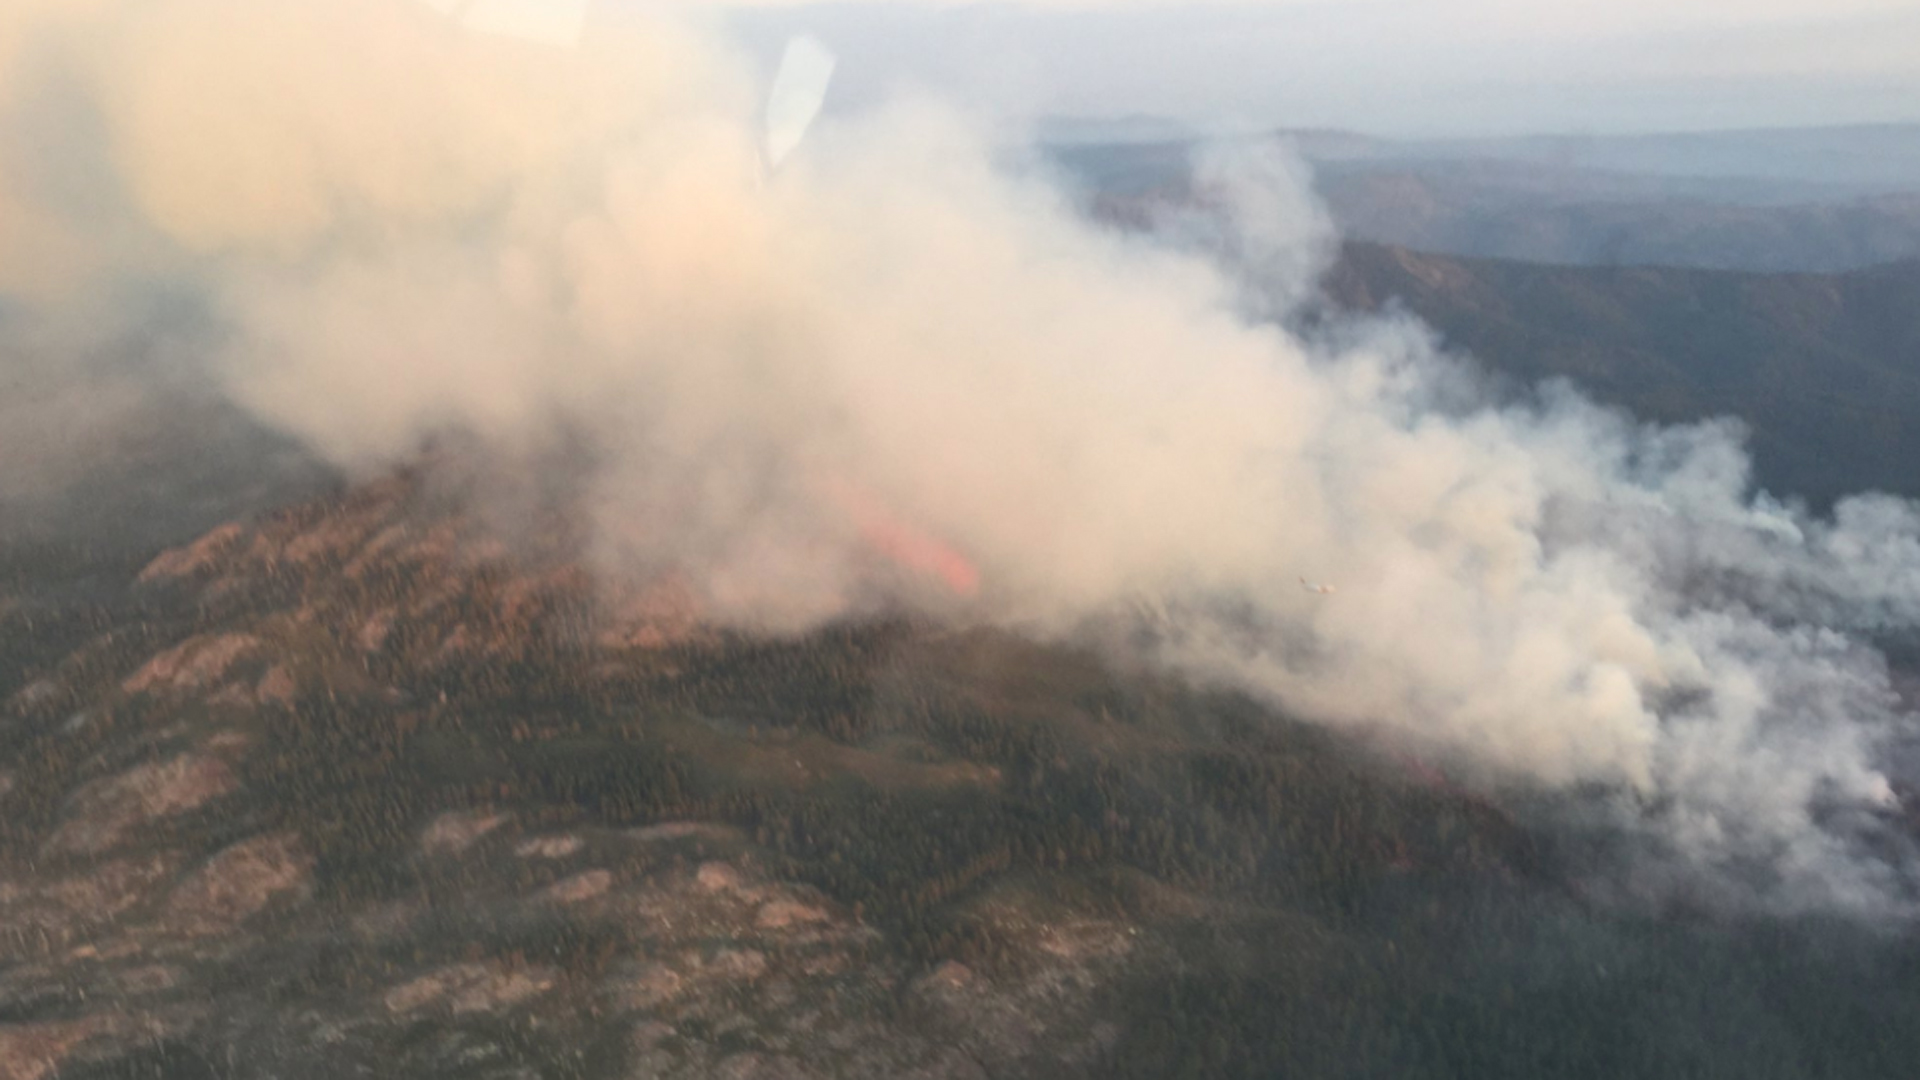 The U.S. Forest Service tweeted out this photo of the North Fire burning in the Tahoe National Forest on Sept. 6, 2018.